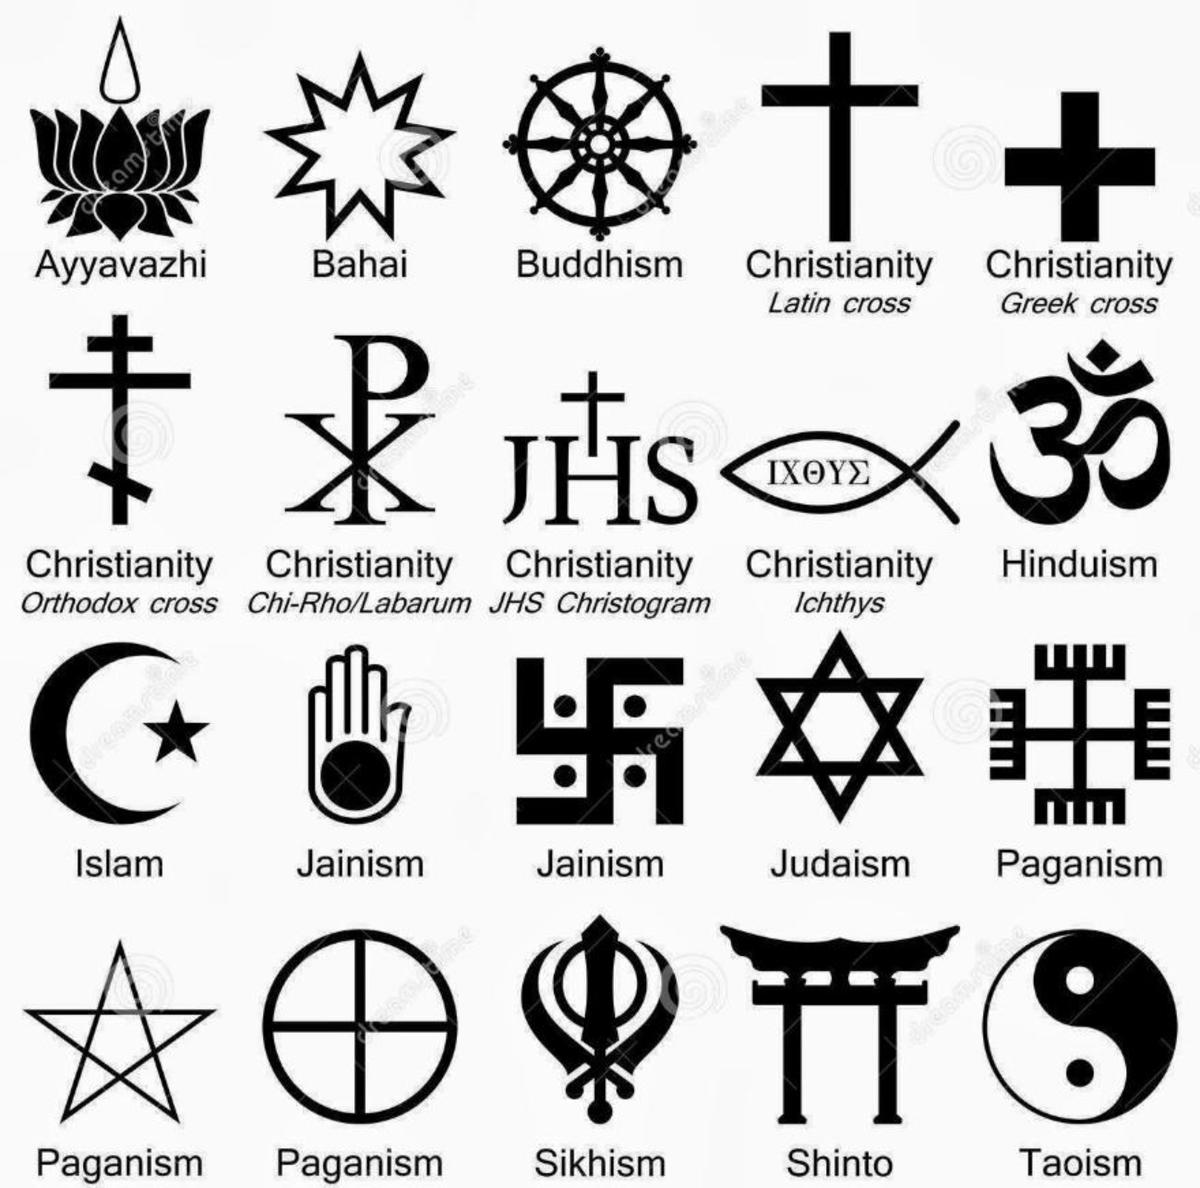 There are many religions in the world, and this photo shows only the major religious symbols of the religion they represent. Now, because there are many religions is is hard to say which one is the right religion to follow. Or even if God exists.